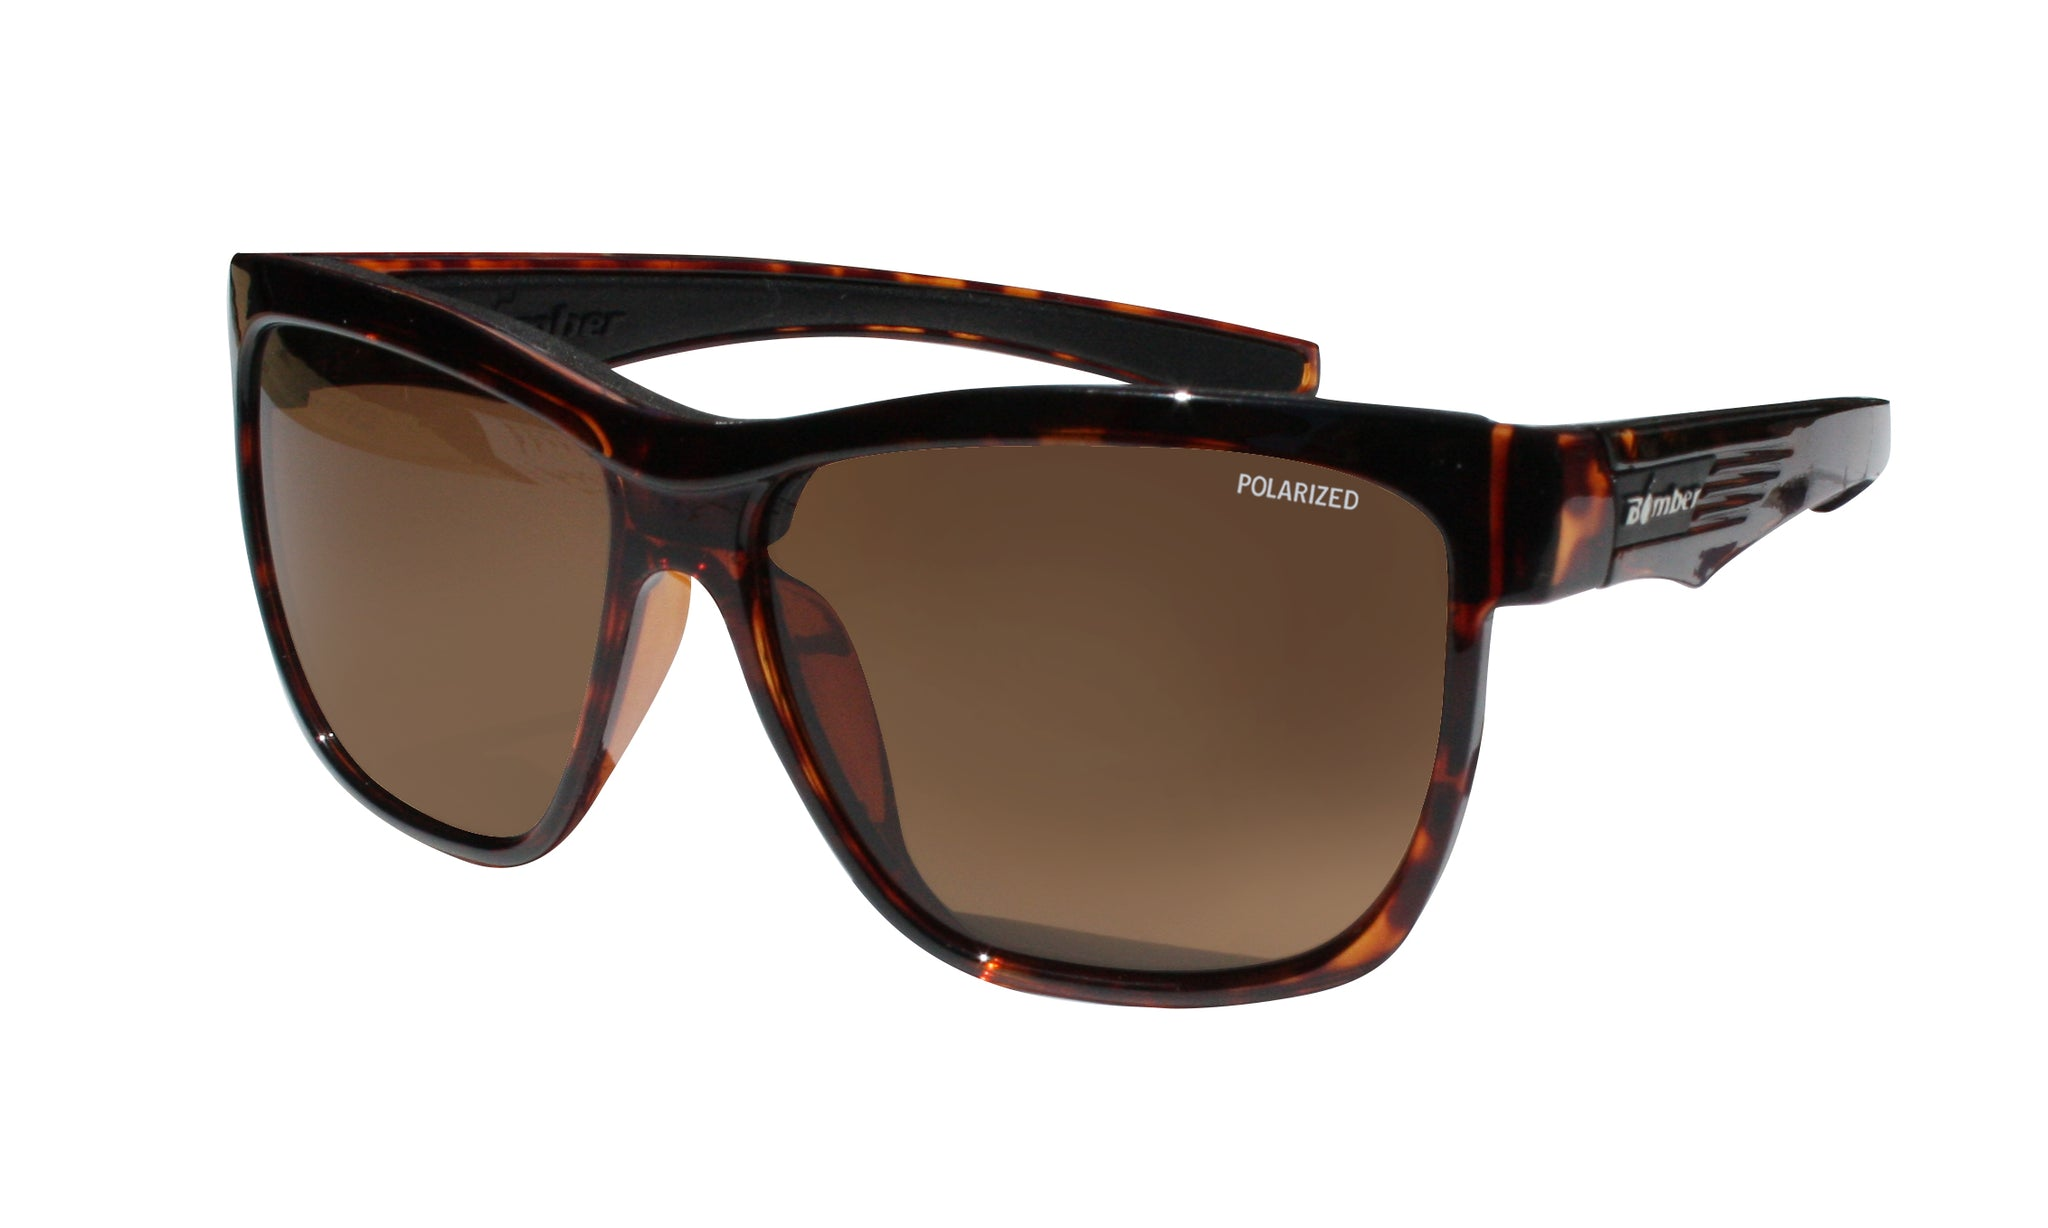 TORTOISE FRAME FLOATING SUNGLASSES WITH BROWN POLARIZED LENS